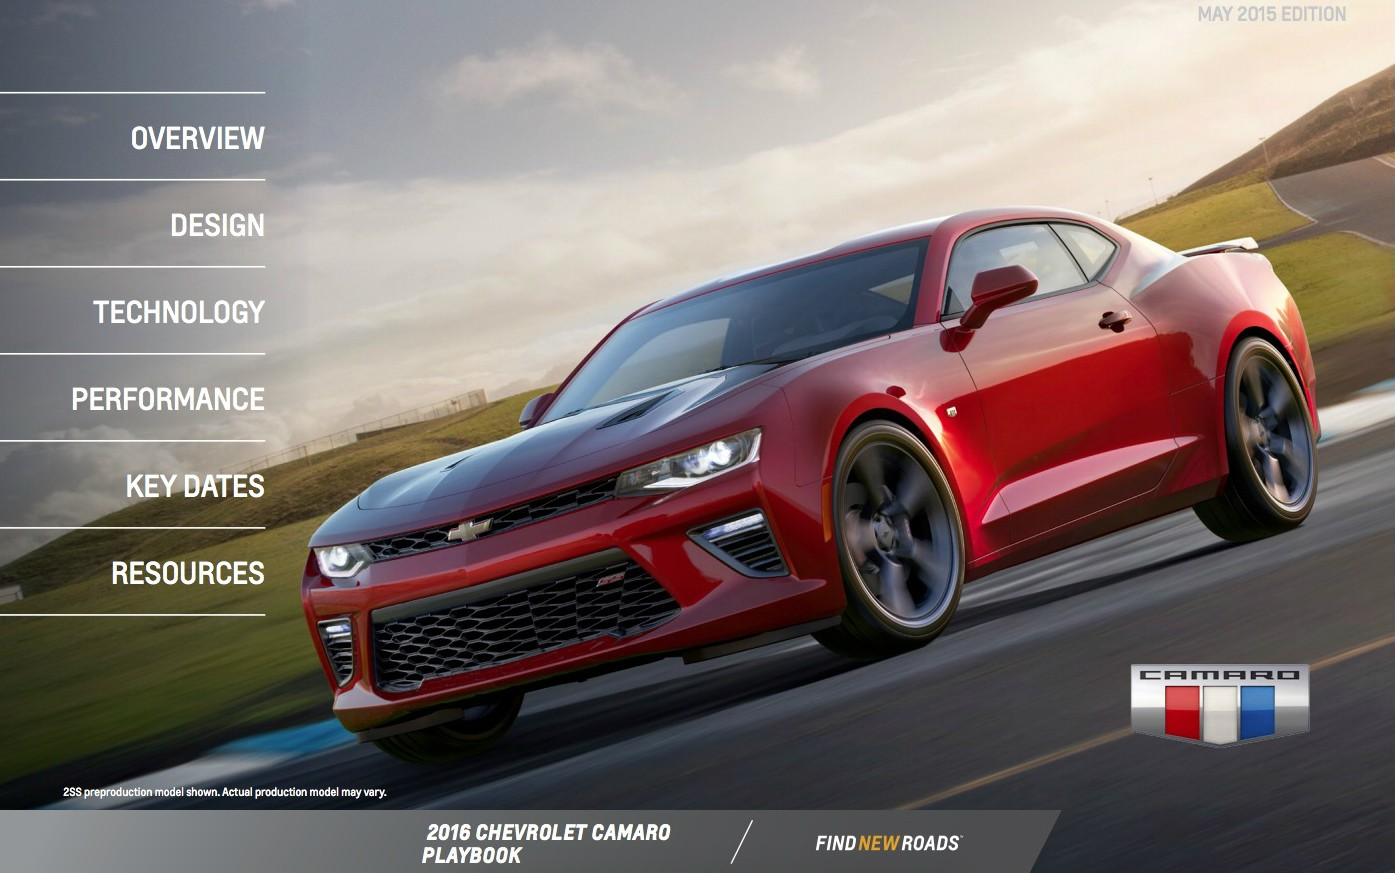 Beautiful 2016 Chevrolet Camaro Order Guide Is Online Ordering Day Draws Nearer